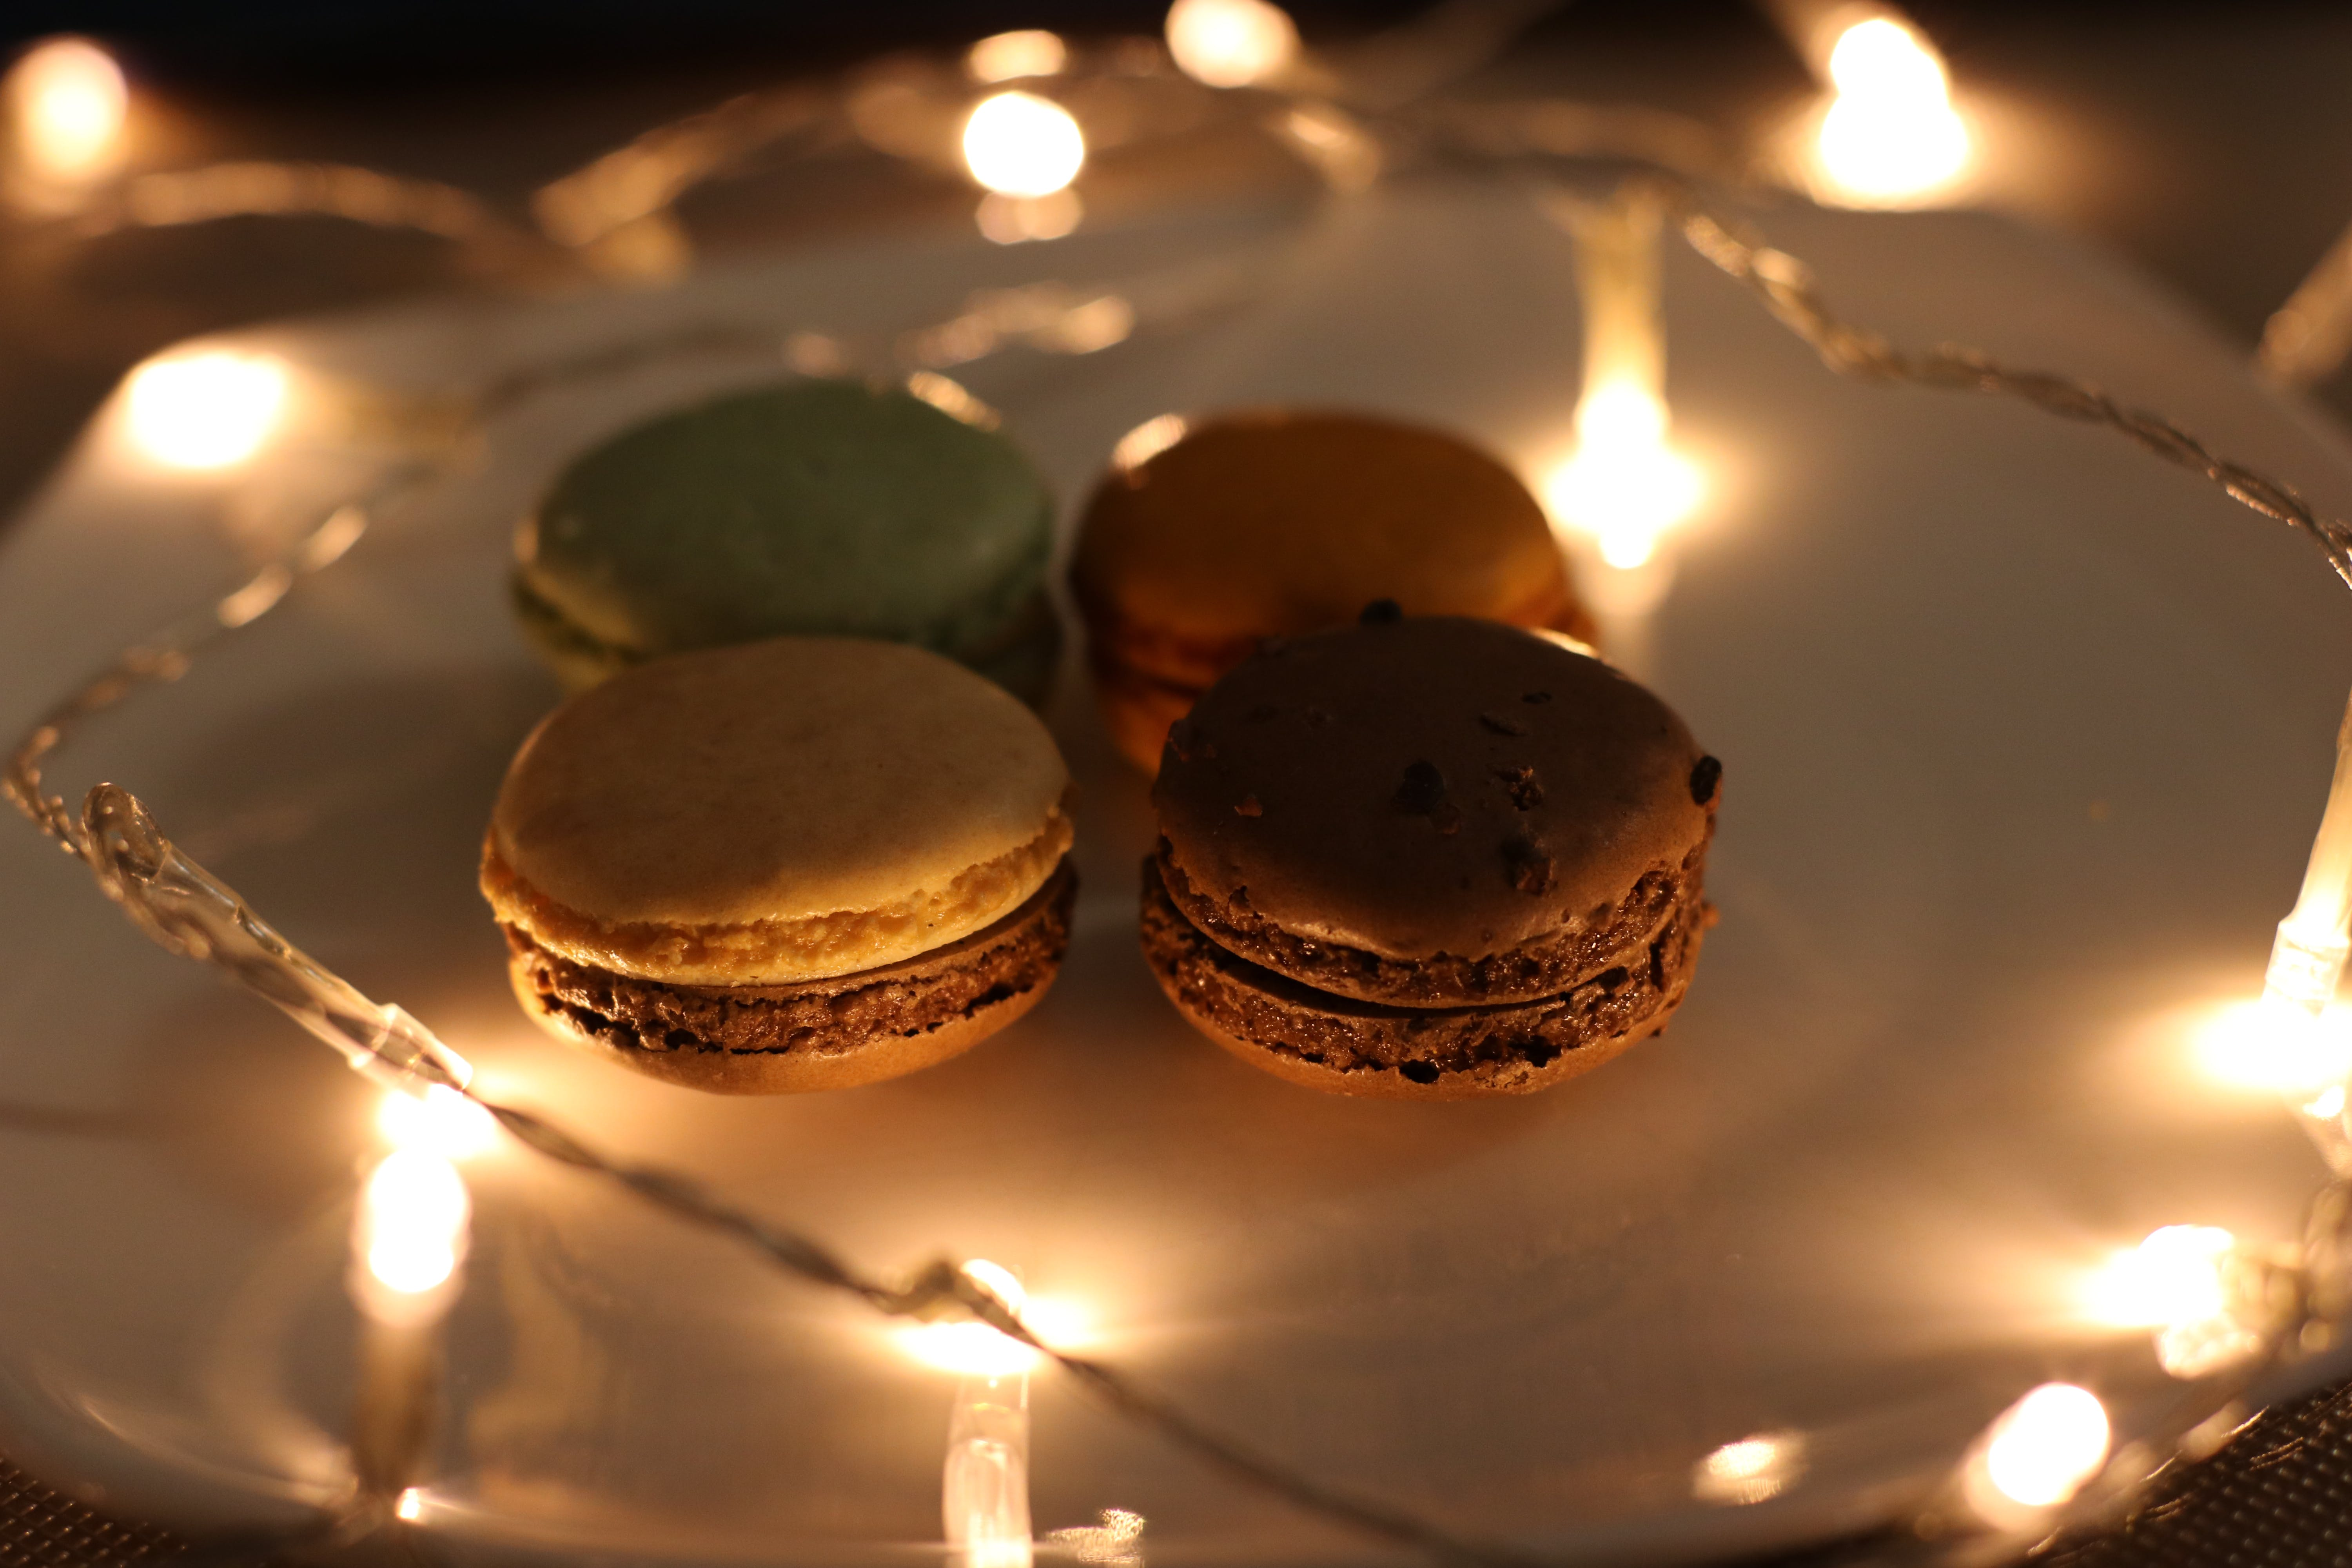 Four Assorted Macaroons on Plate